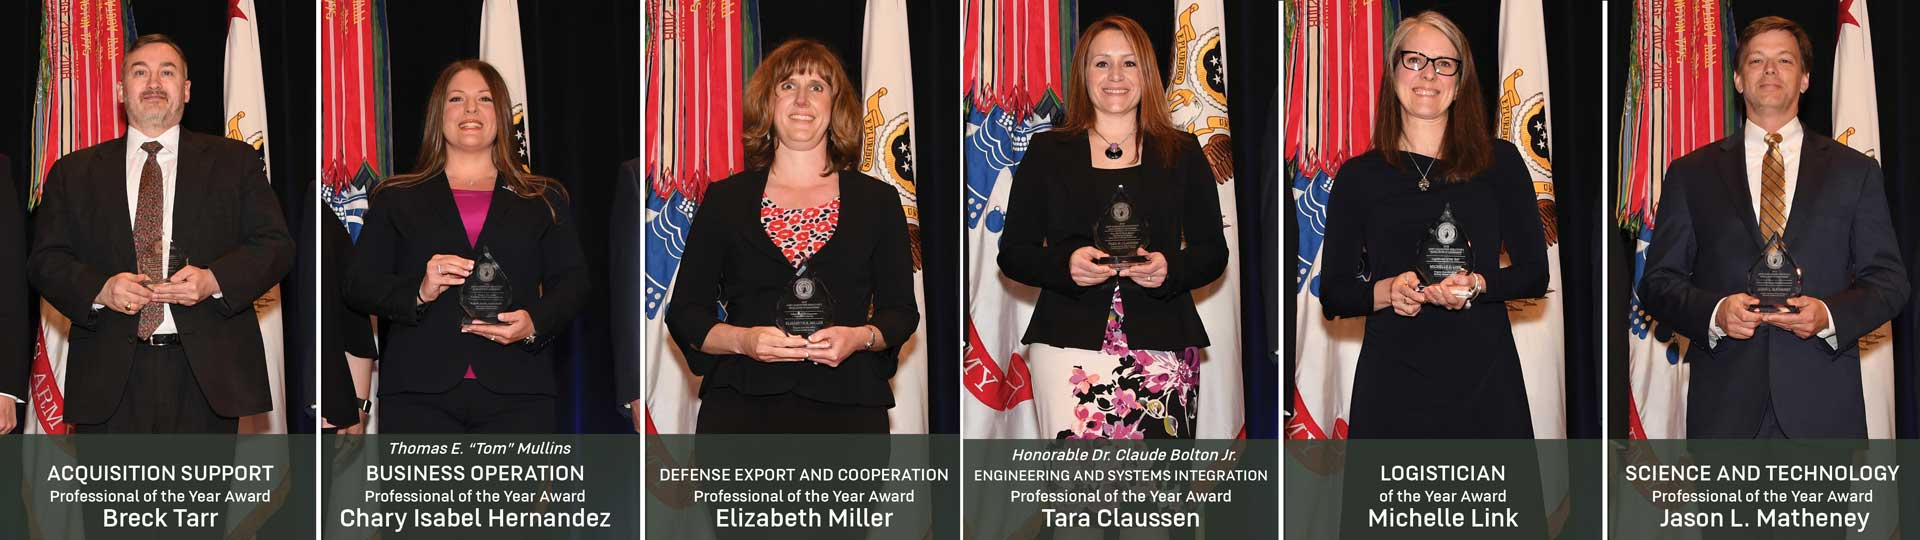 Images of individual award winners